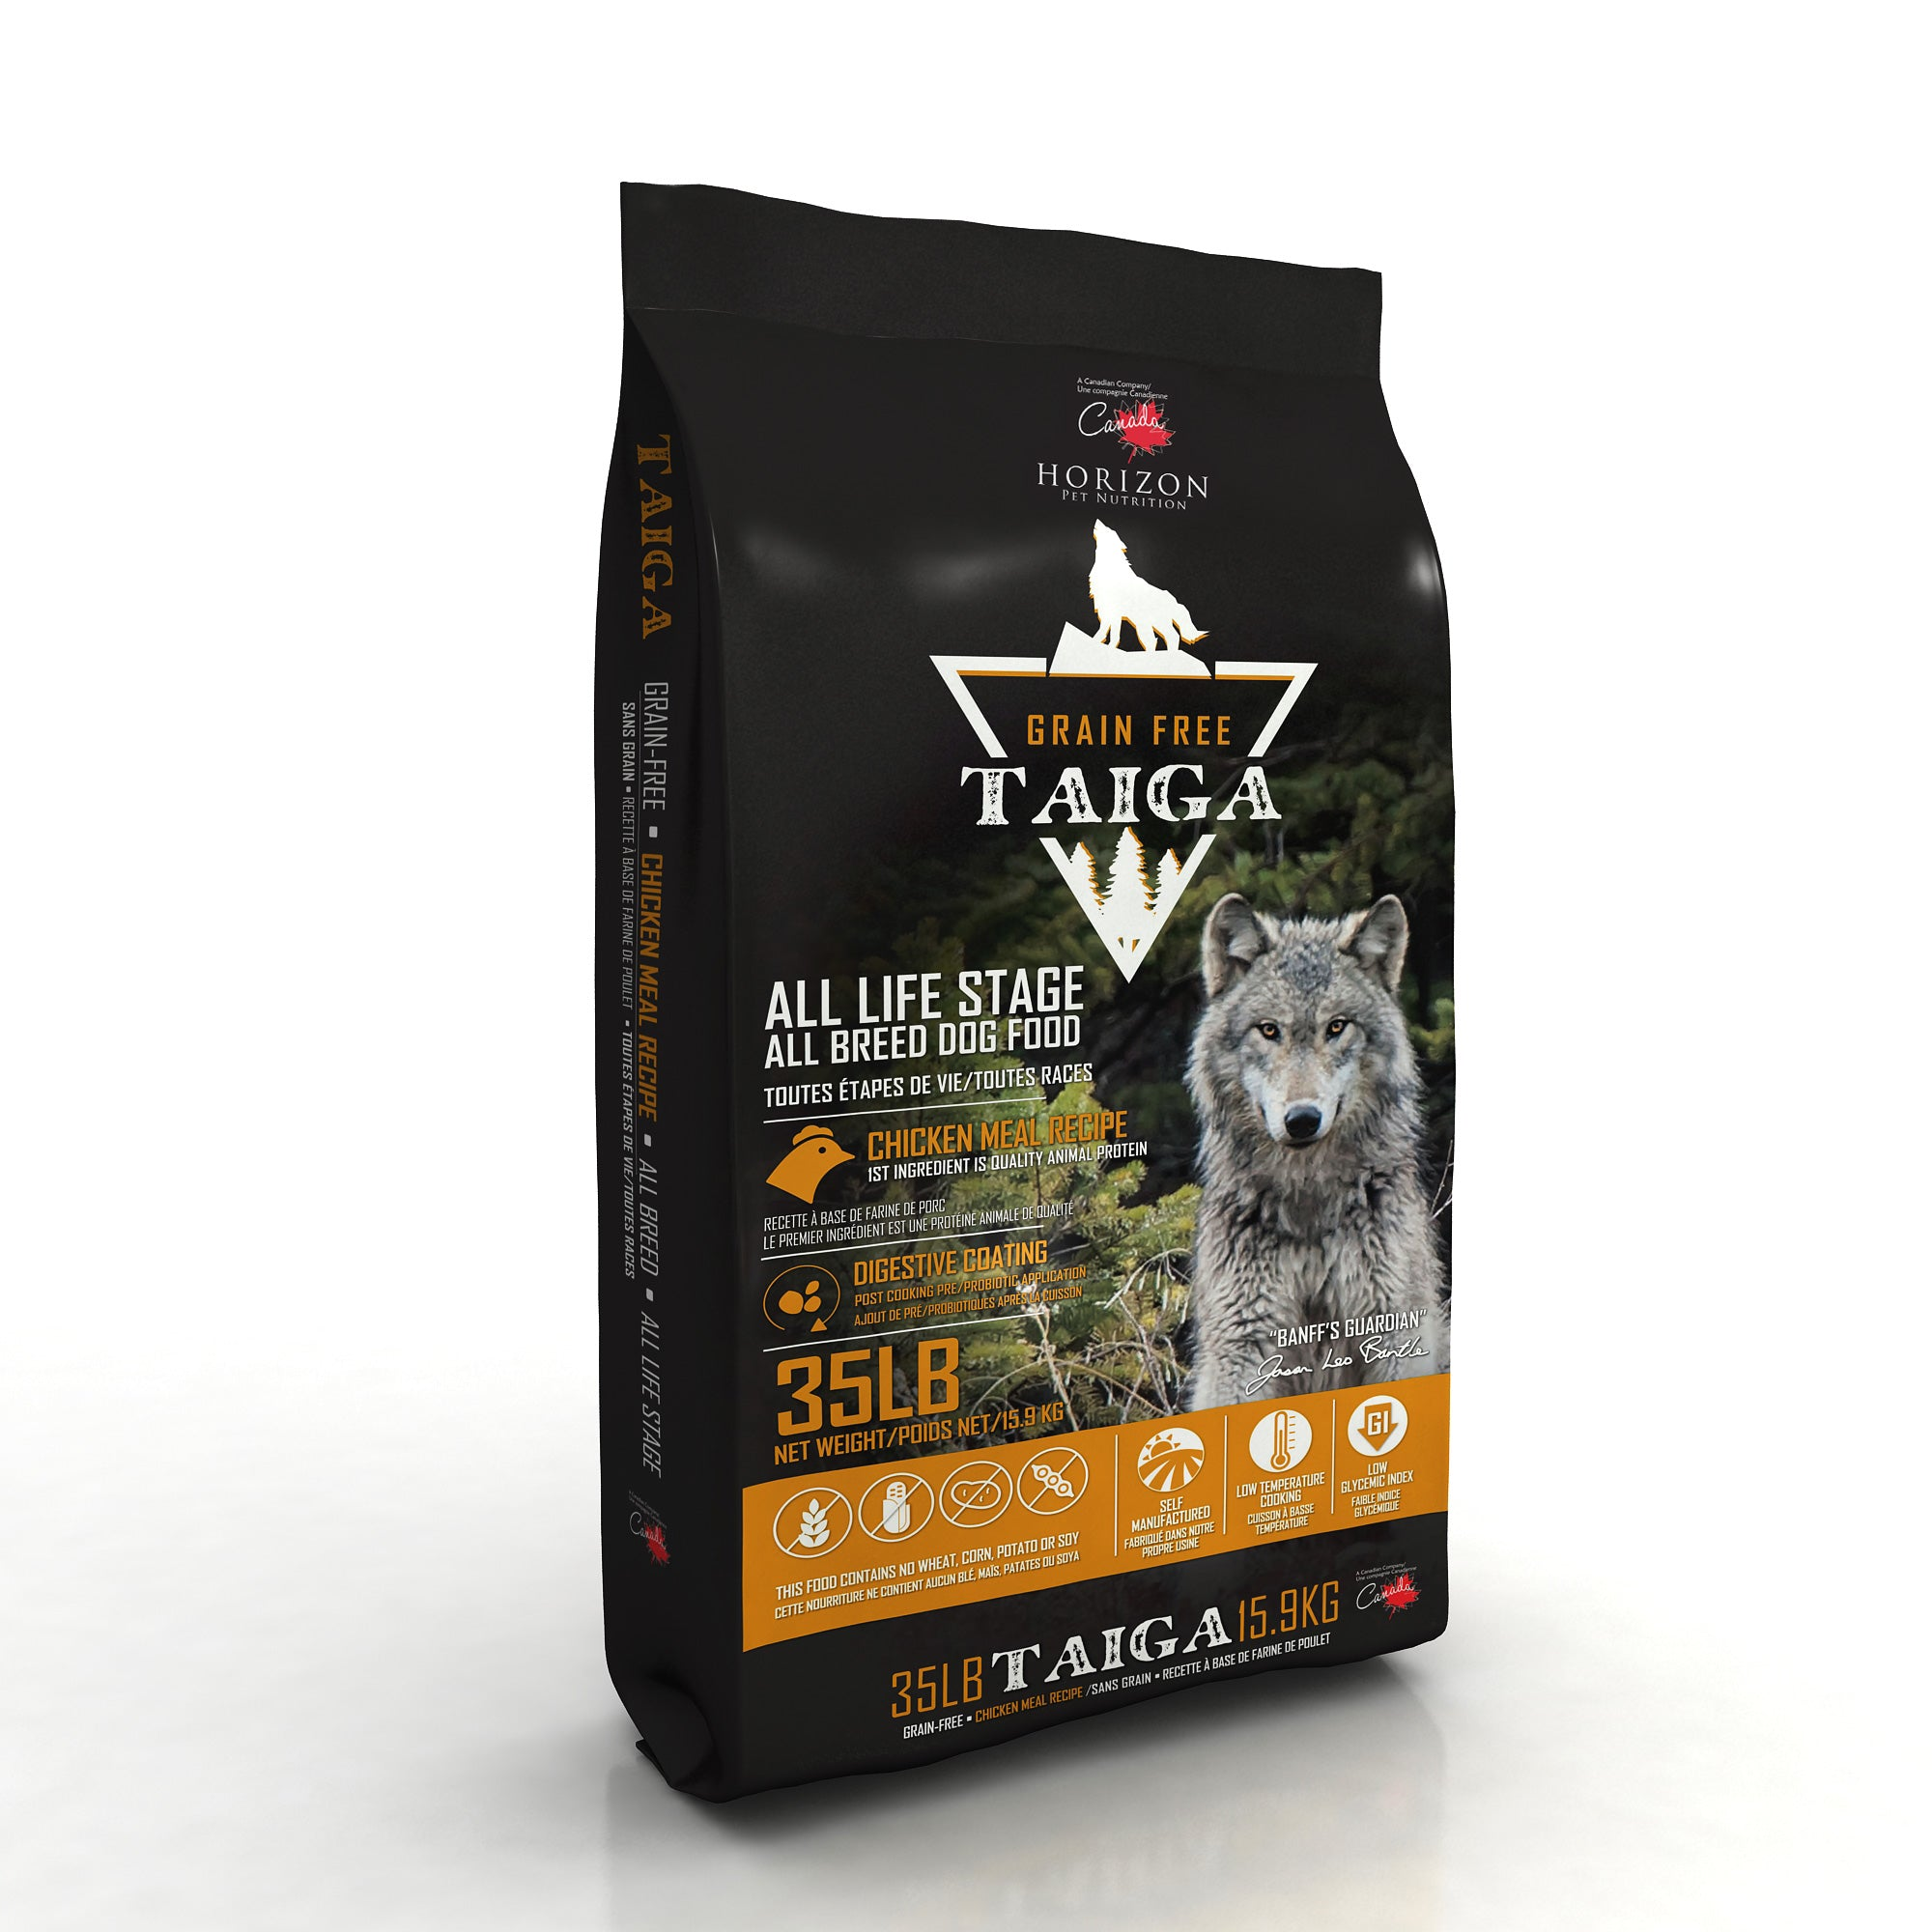 Taiga Grain-Free Dog Food